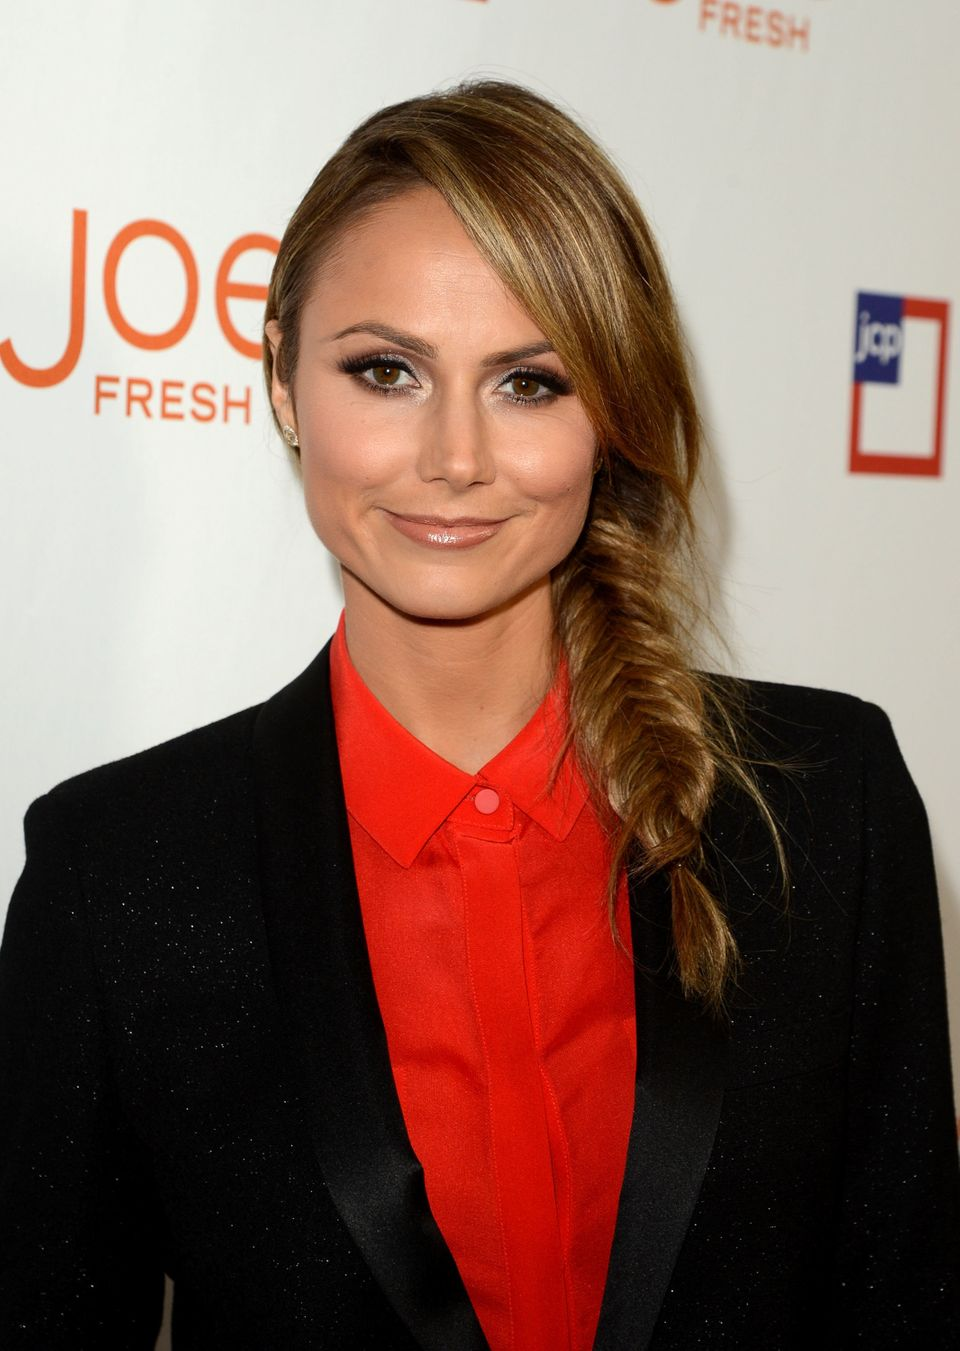 We've got <em>major</em> braid envy for Keibler's neat fishtail. Keeping her long layers shiny and smooth prevents the low-ma